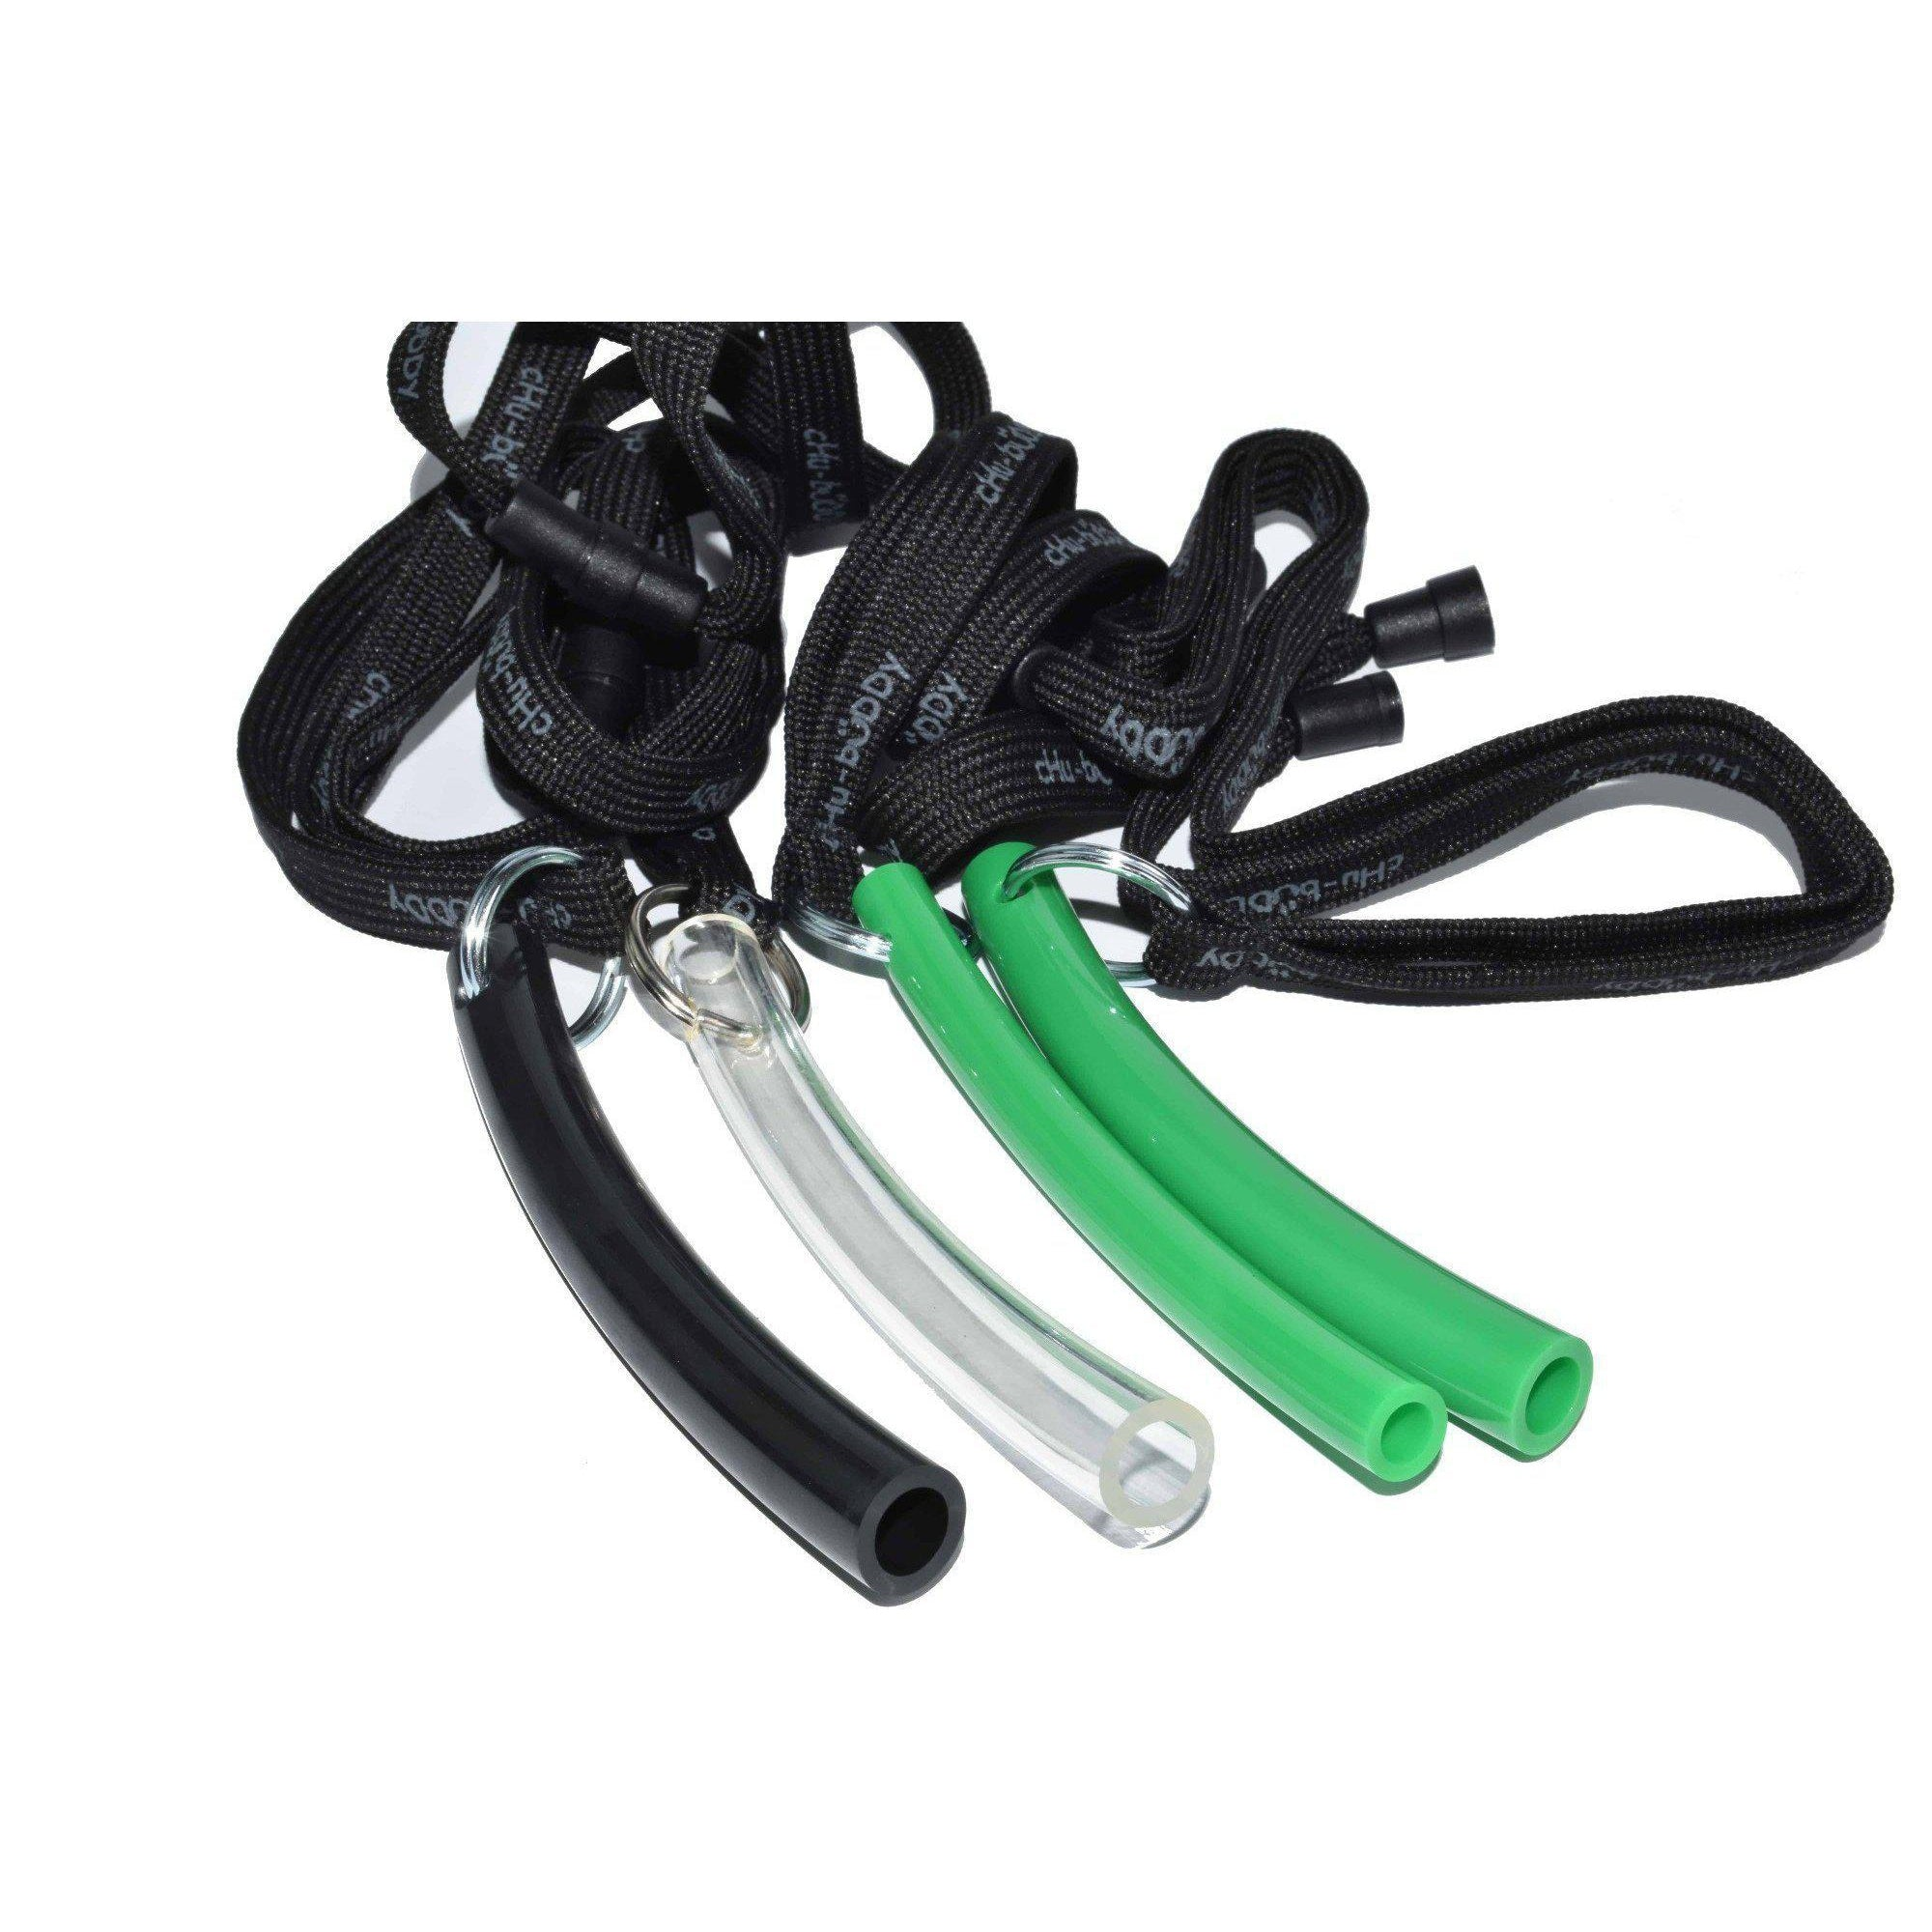 Factory Seconds strong tubes- random colors, neck or shoulder lanyard- Orig $9.99 to $11.99